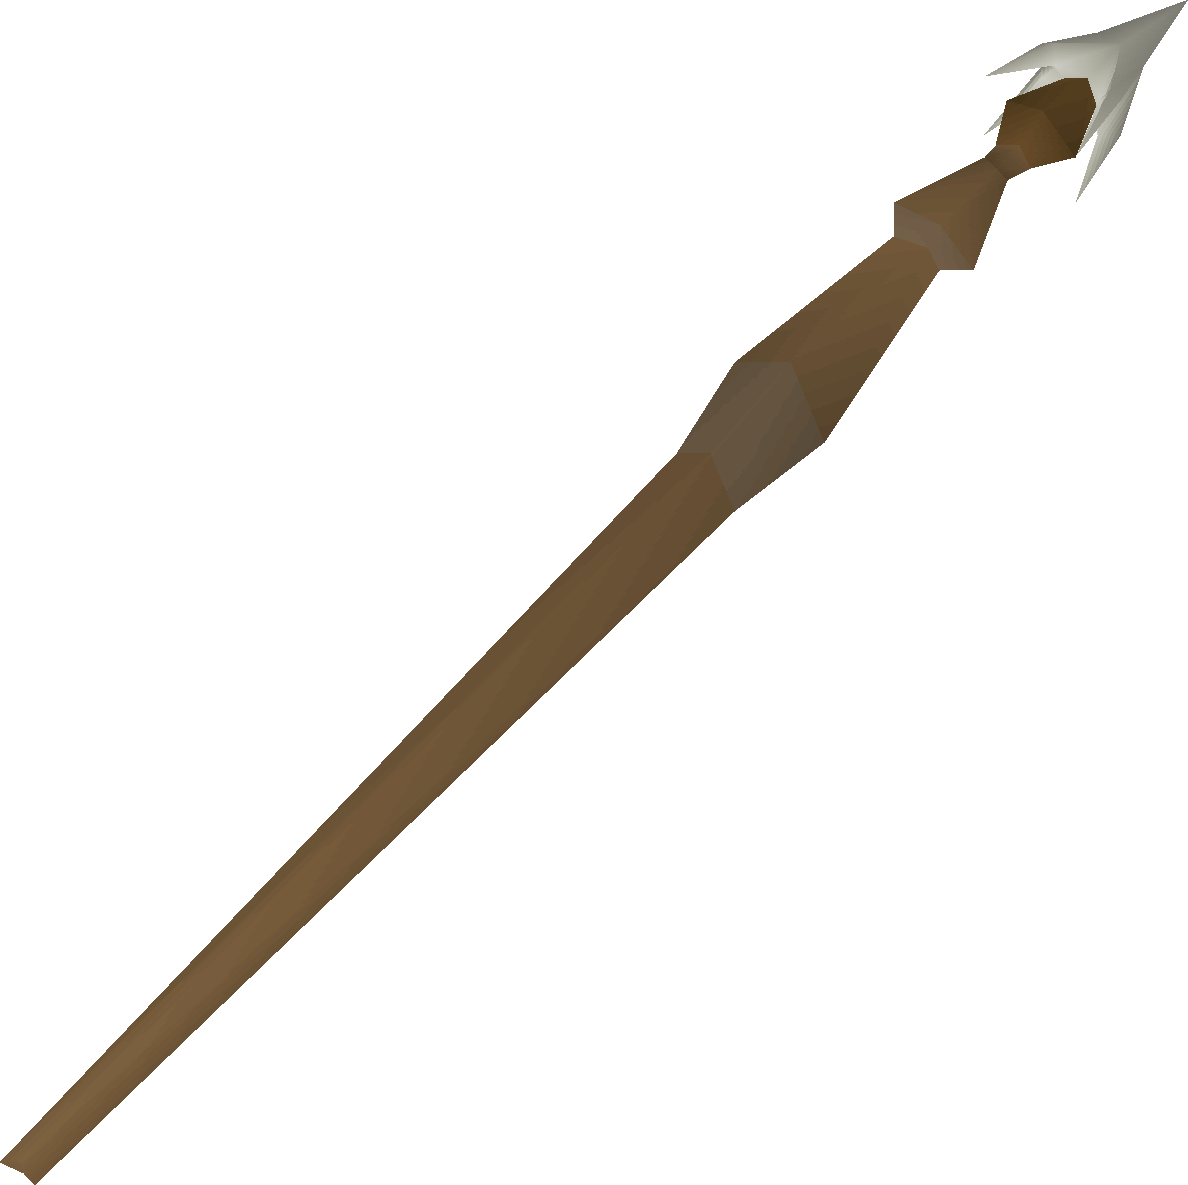 Barb-tail harpoon detail